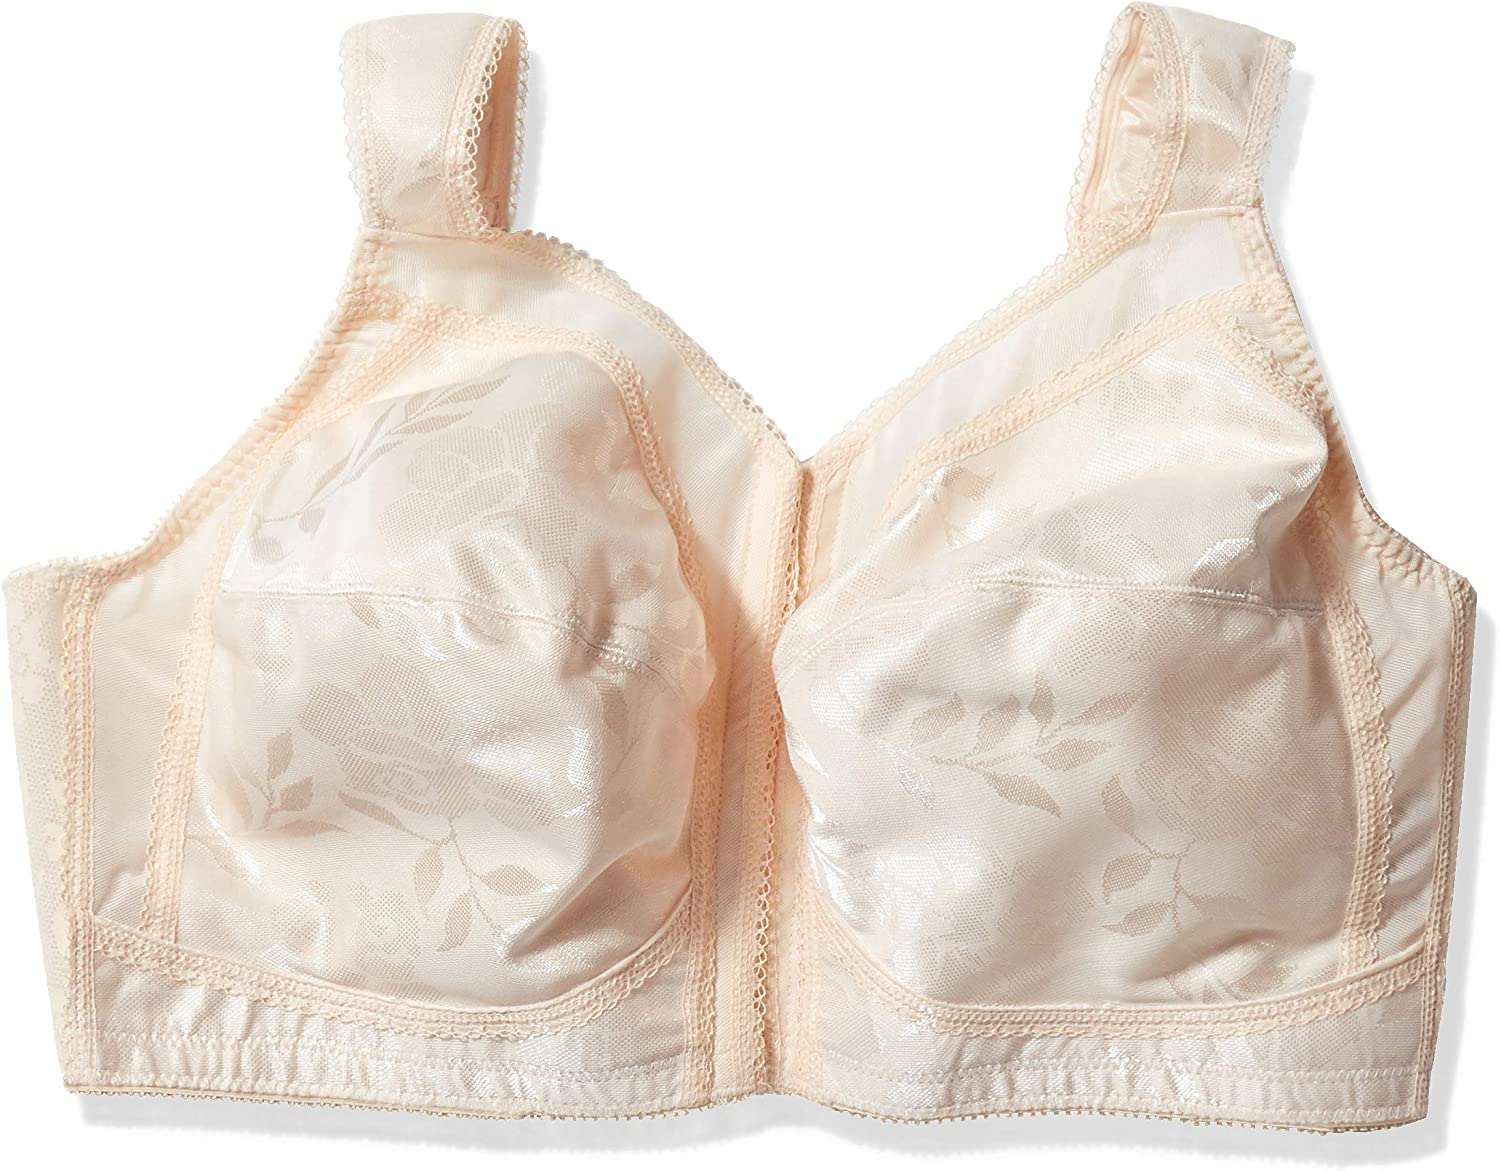 Playtex Women/'s Plus Size Front-Close Bra with Flex Back